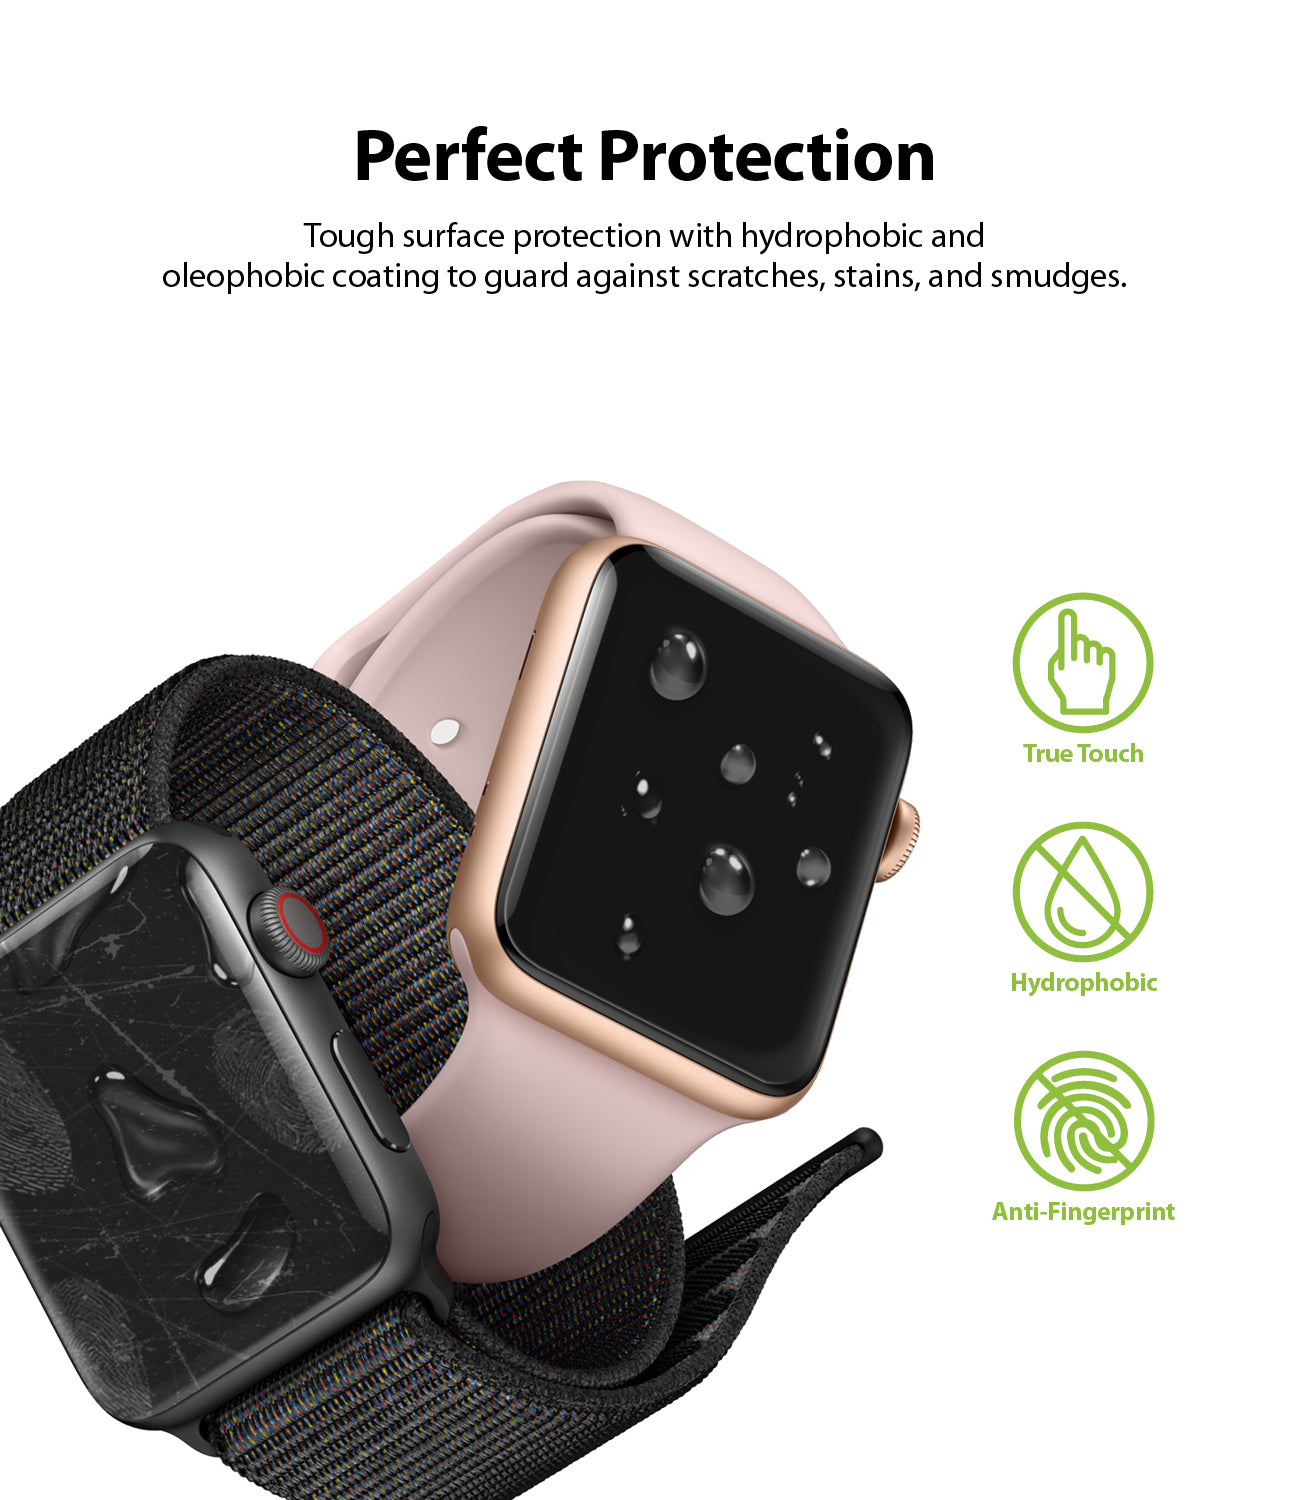 perfect protection : tough surface protection with hydrophobic and oleophobic coating to guard against scratches, stains, and smudges